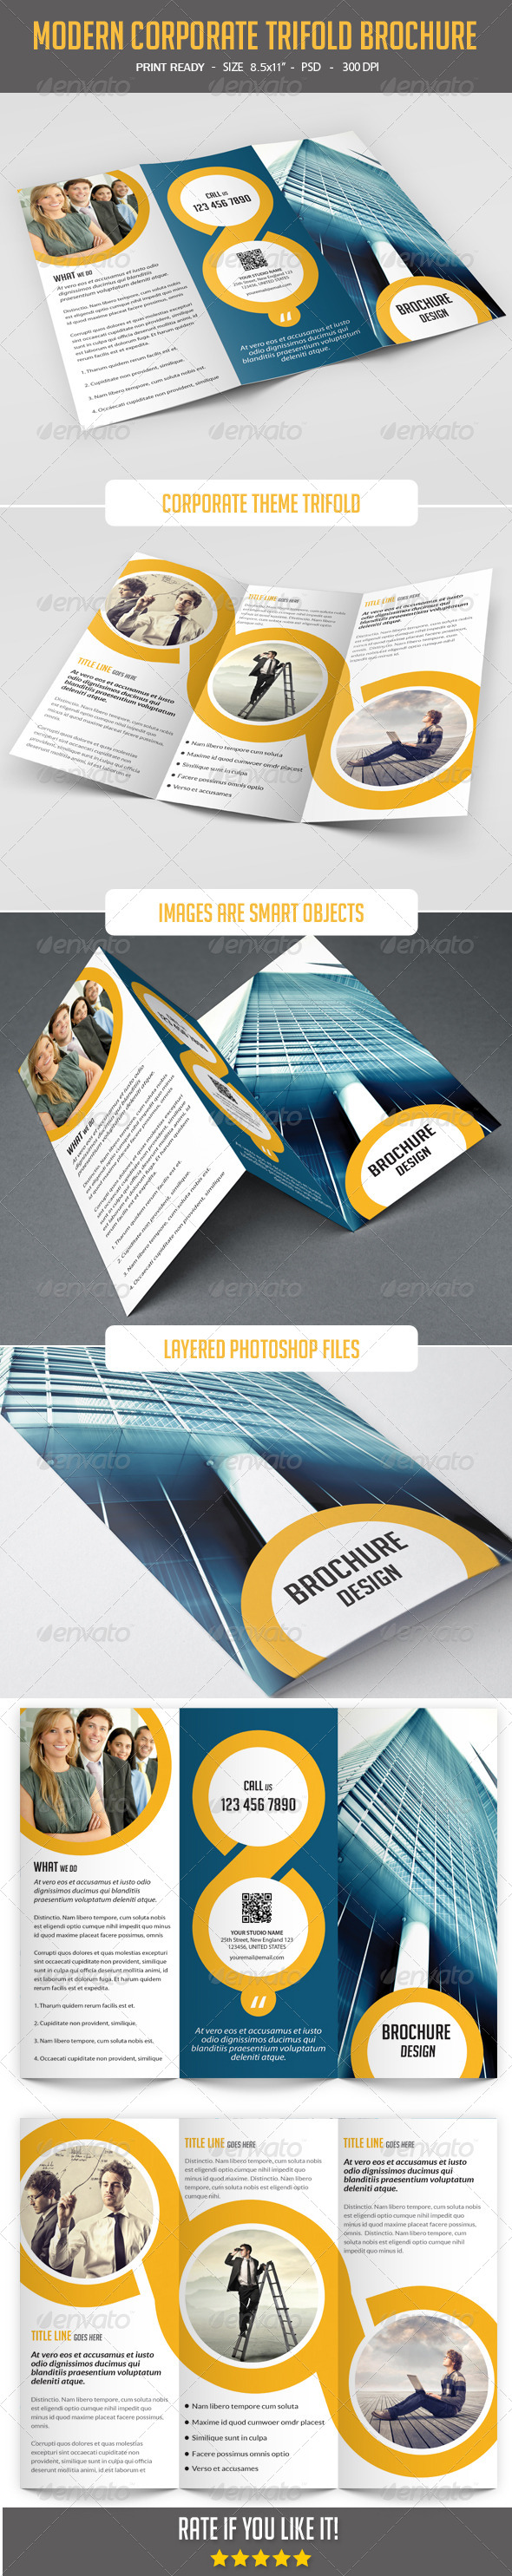 GraphicRiver Modern Corporate Tri-Fold Brochure 8136080